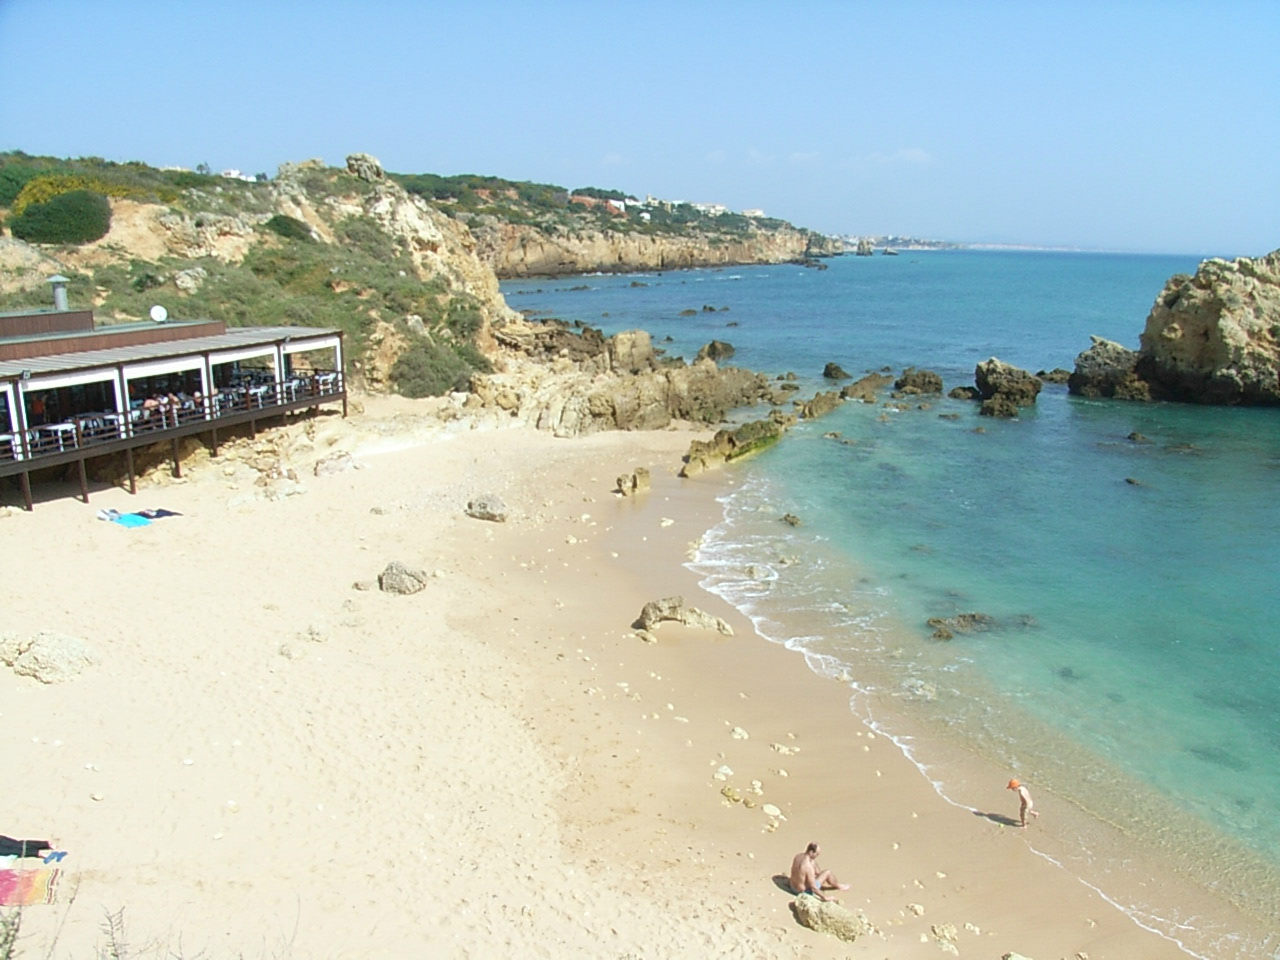 Arrifes beach in Sao Rafael/Albufeira is our favourite hideaway Blue Flag Beach.